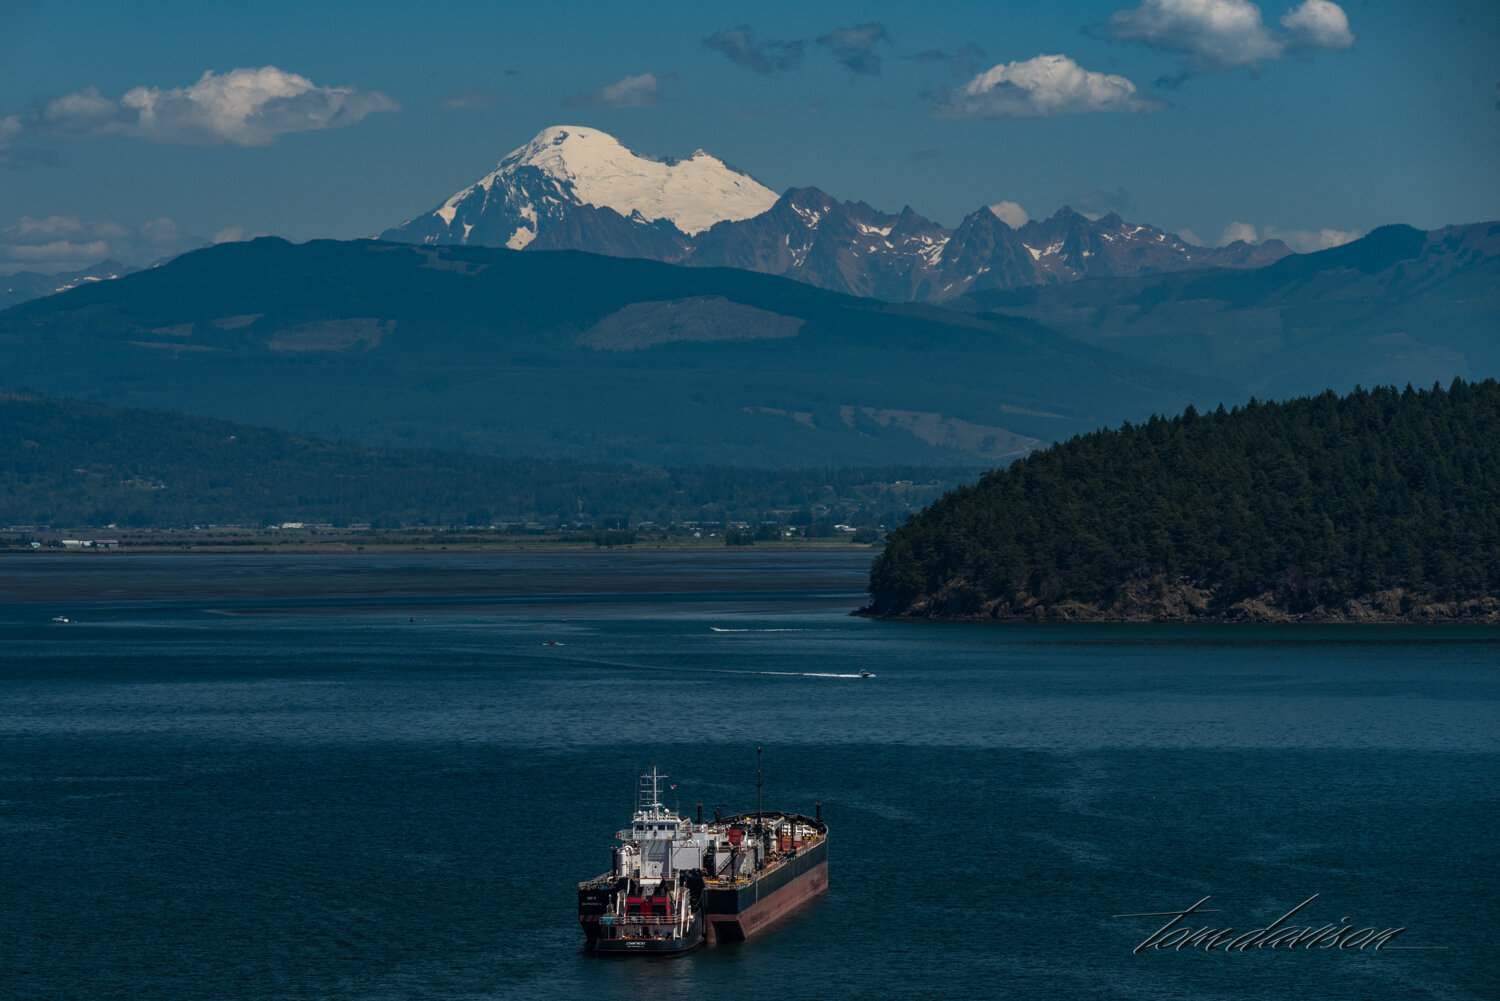 Mt. Baker in the background of Anacortes harbor.